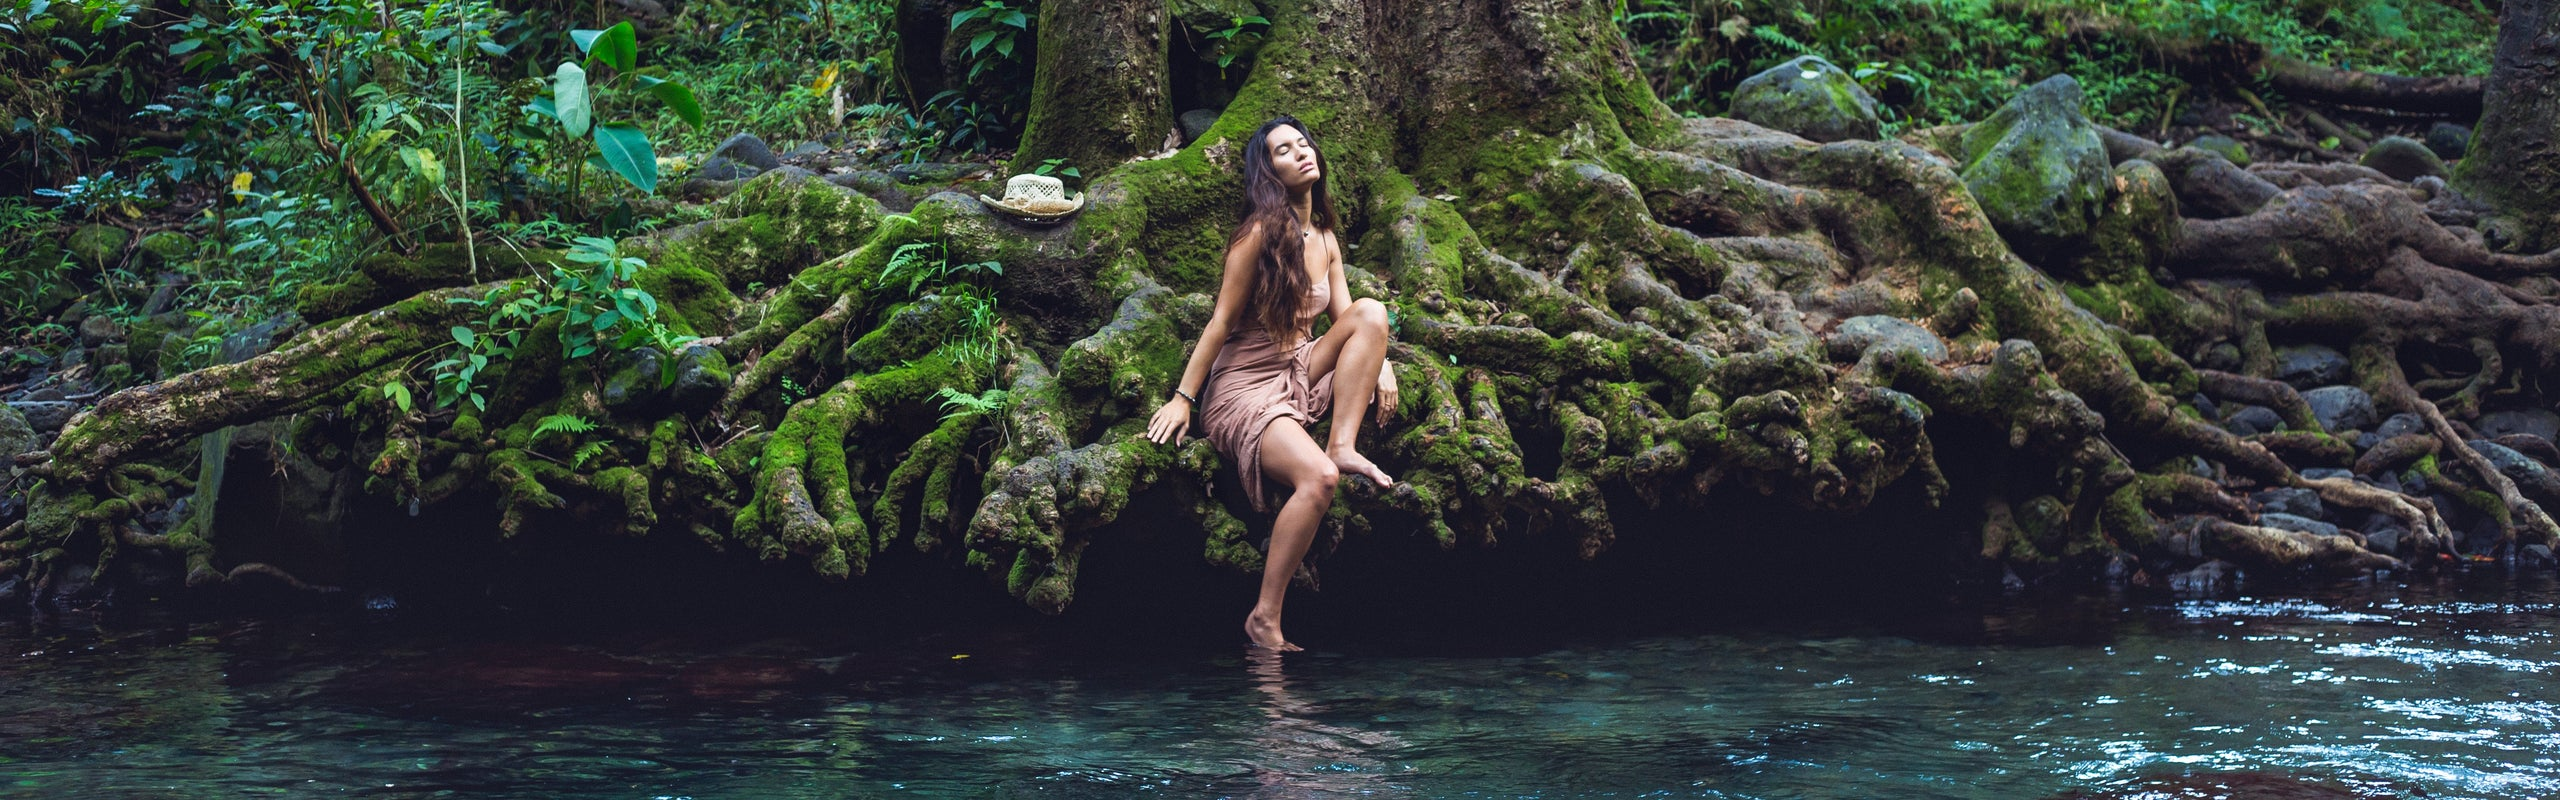 Women about to step into a flowing stream in Hawaii. She looks about to embark on a self-care routine.